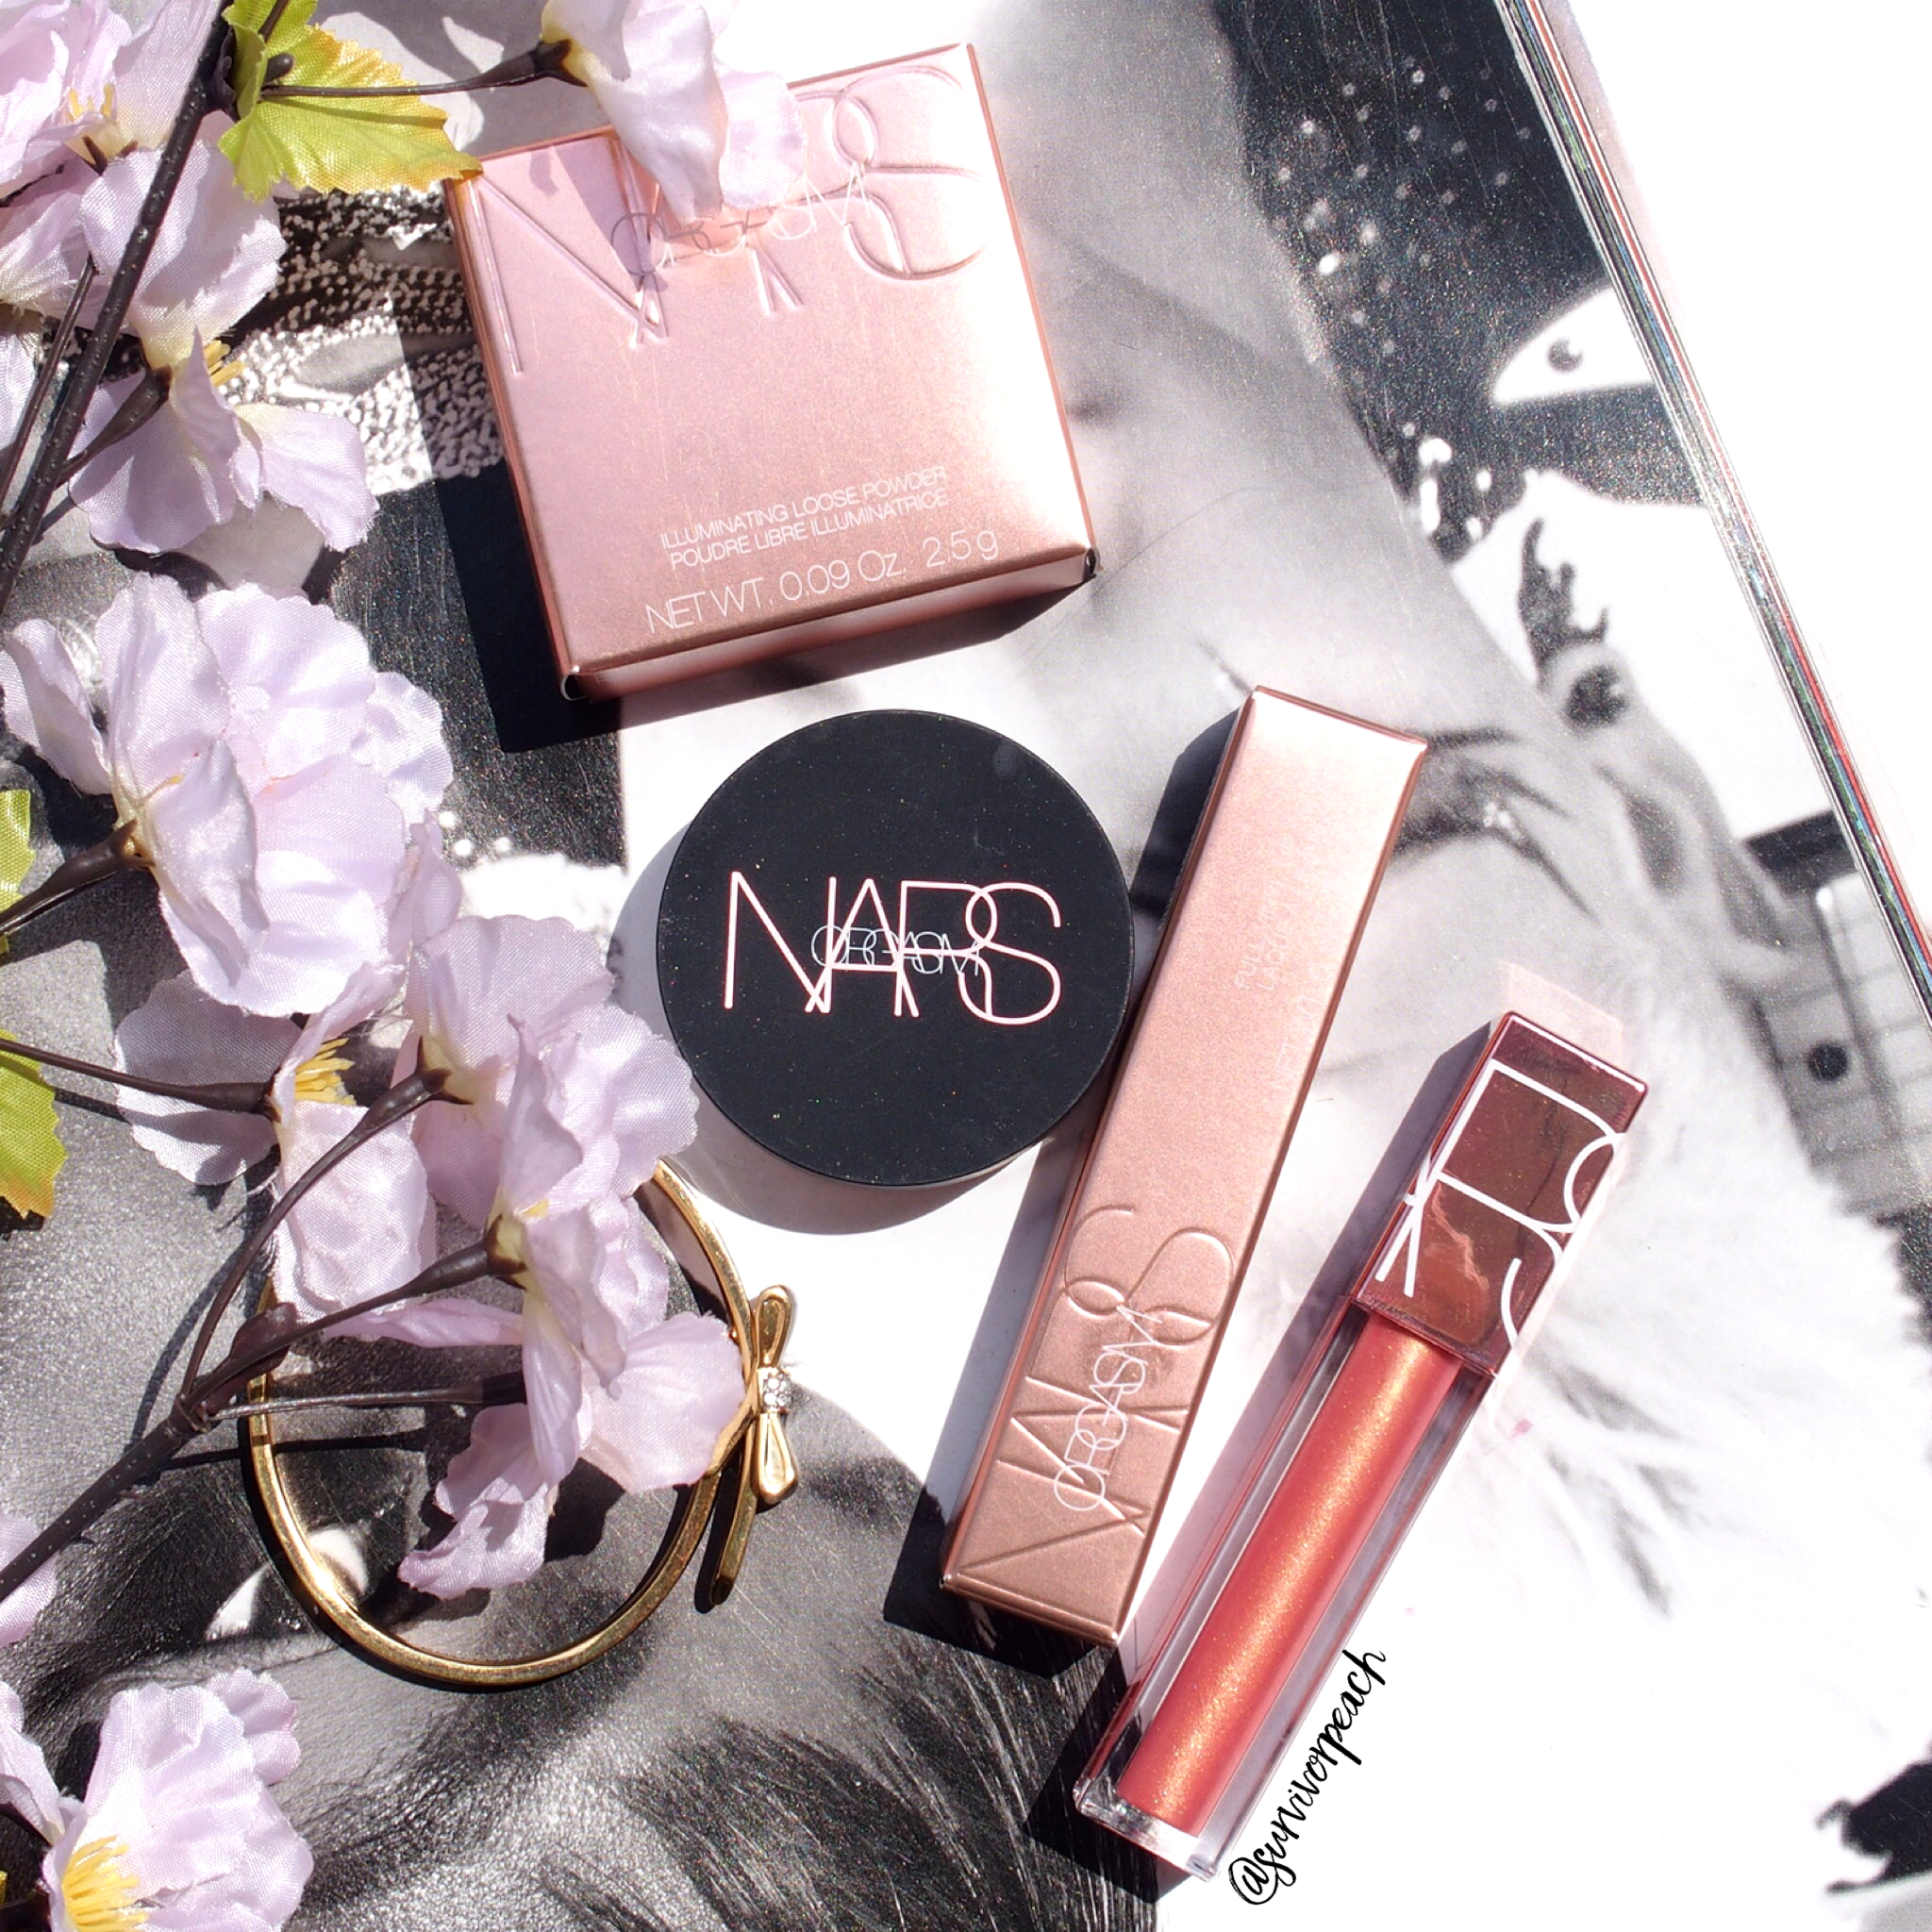 Nars Full Vinyl Lip lacquer , Illuminating Loose Powder